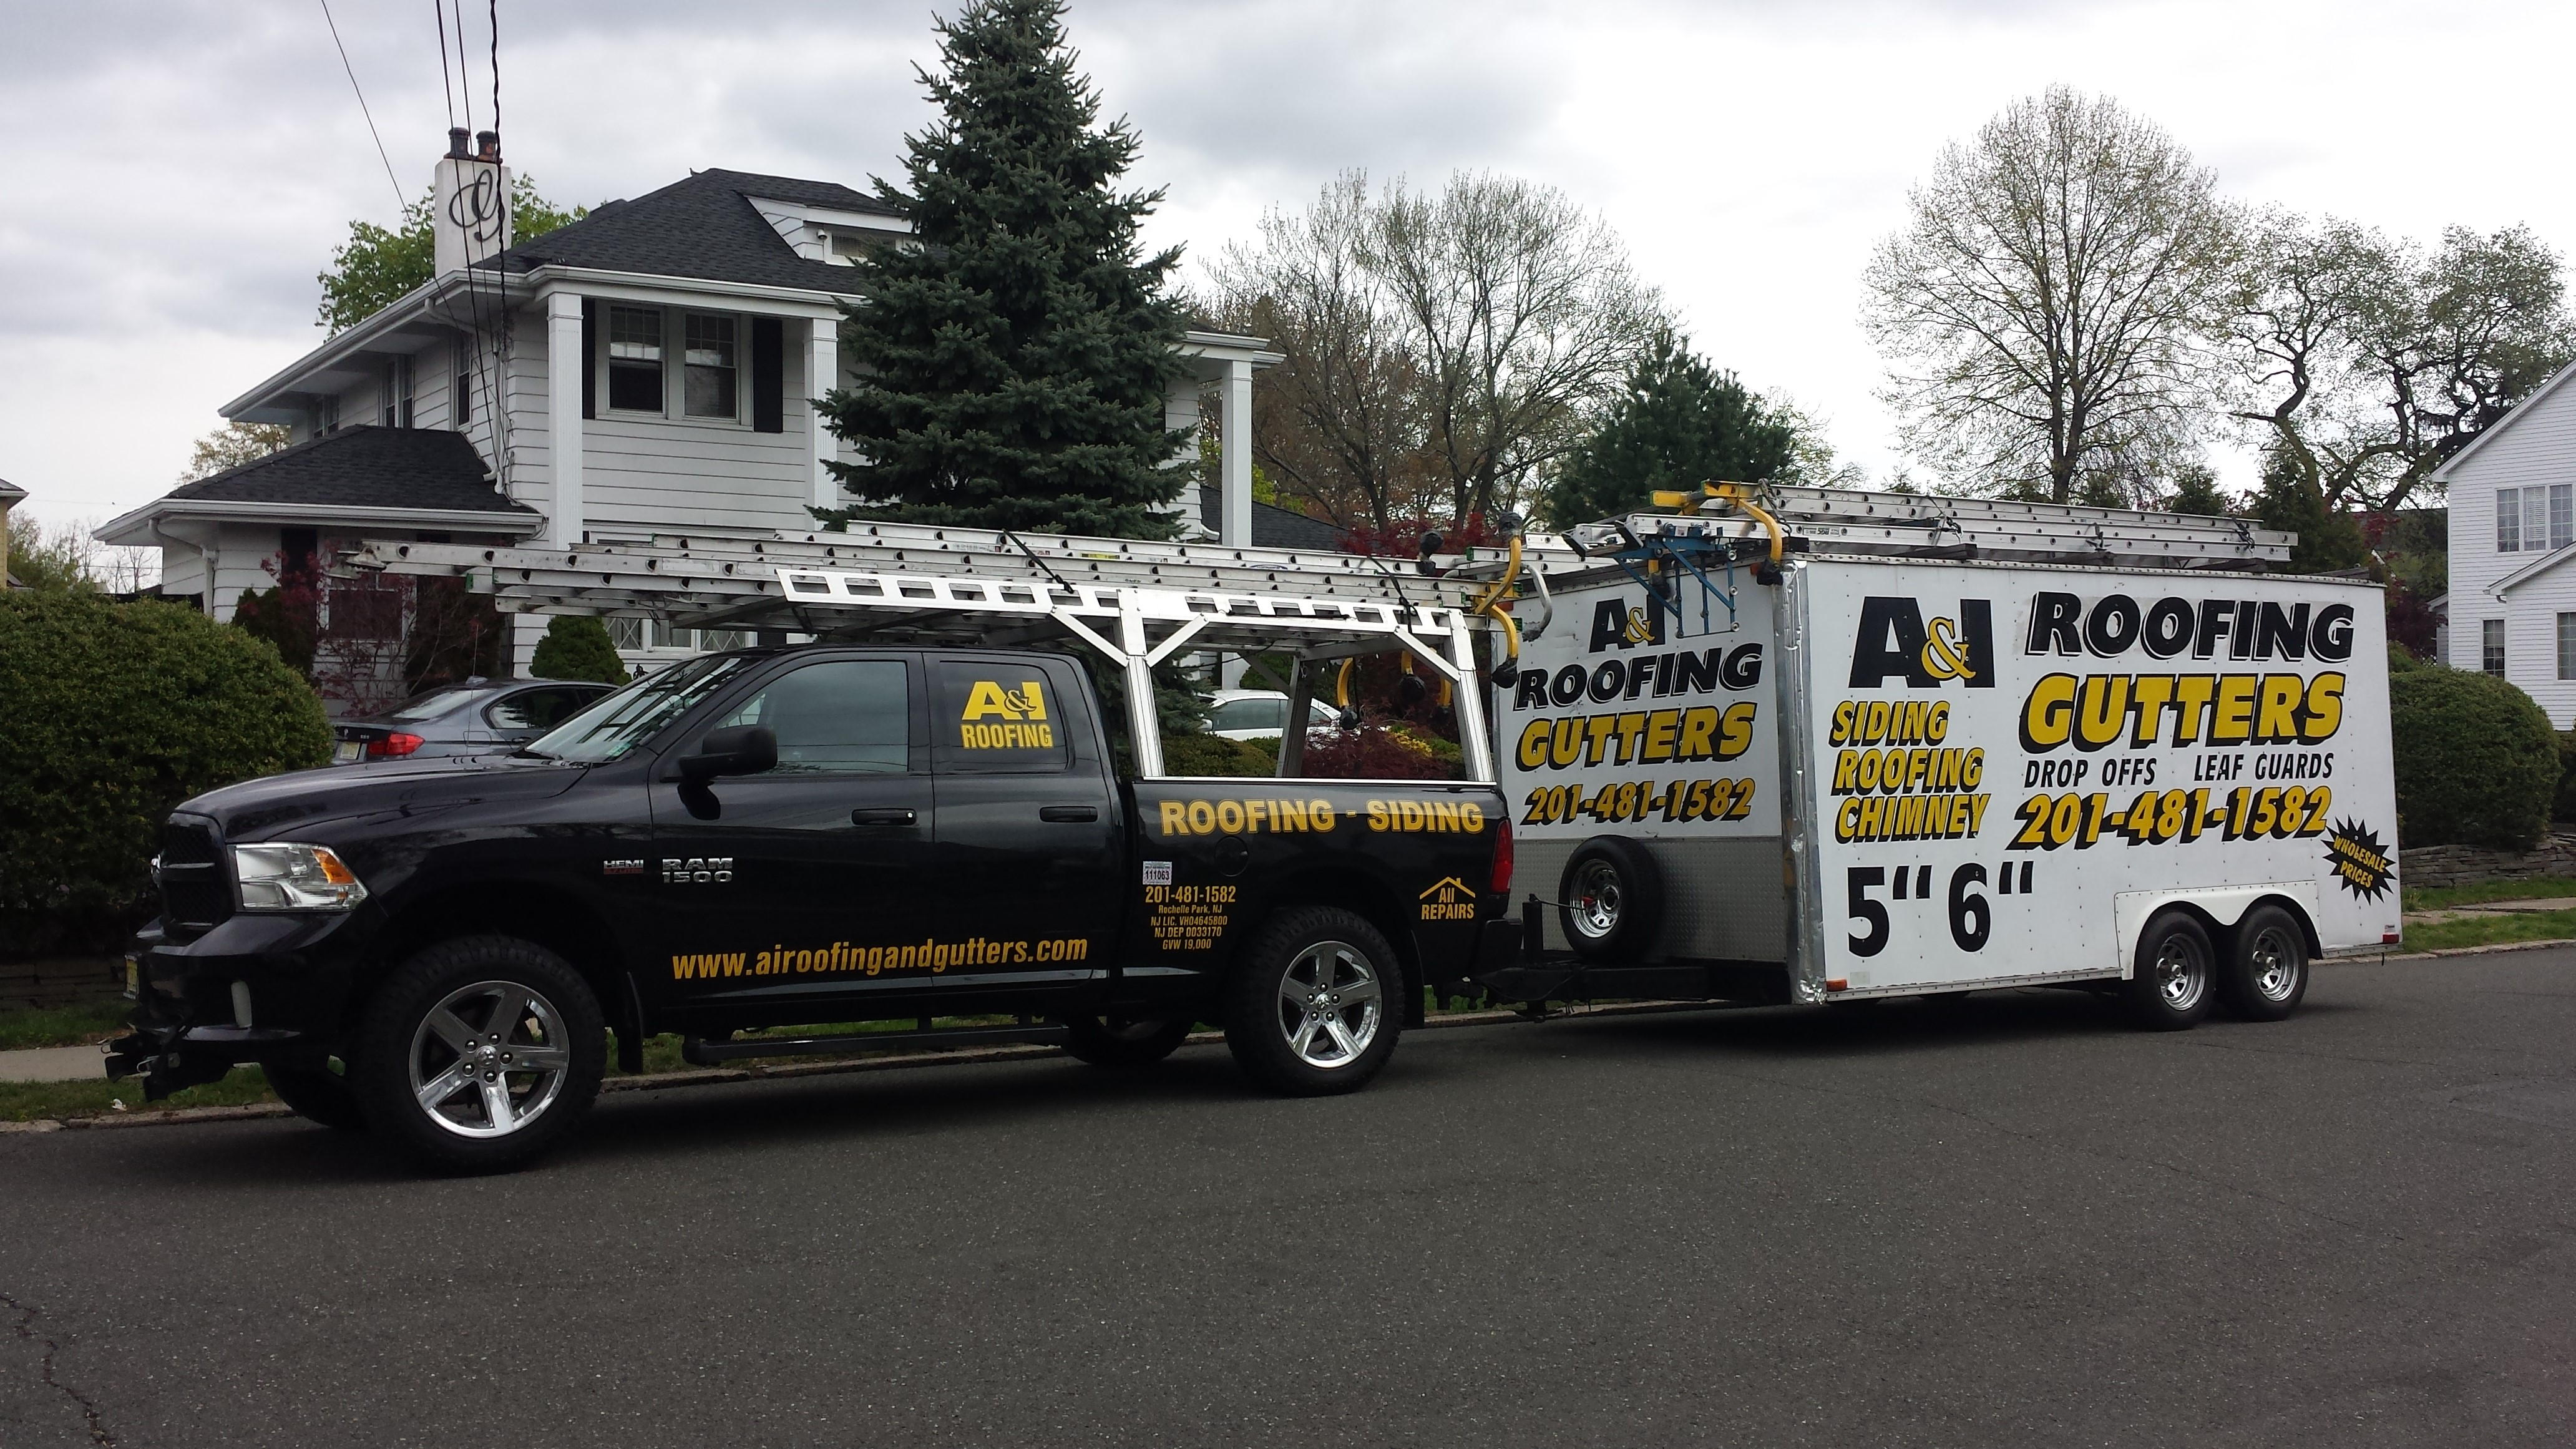 A&I Roofing and Gutters image 1